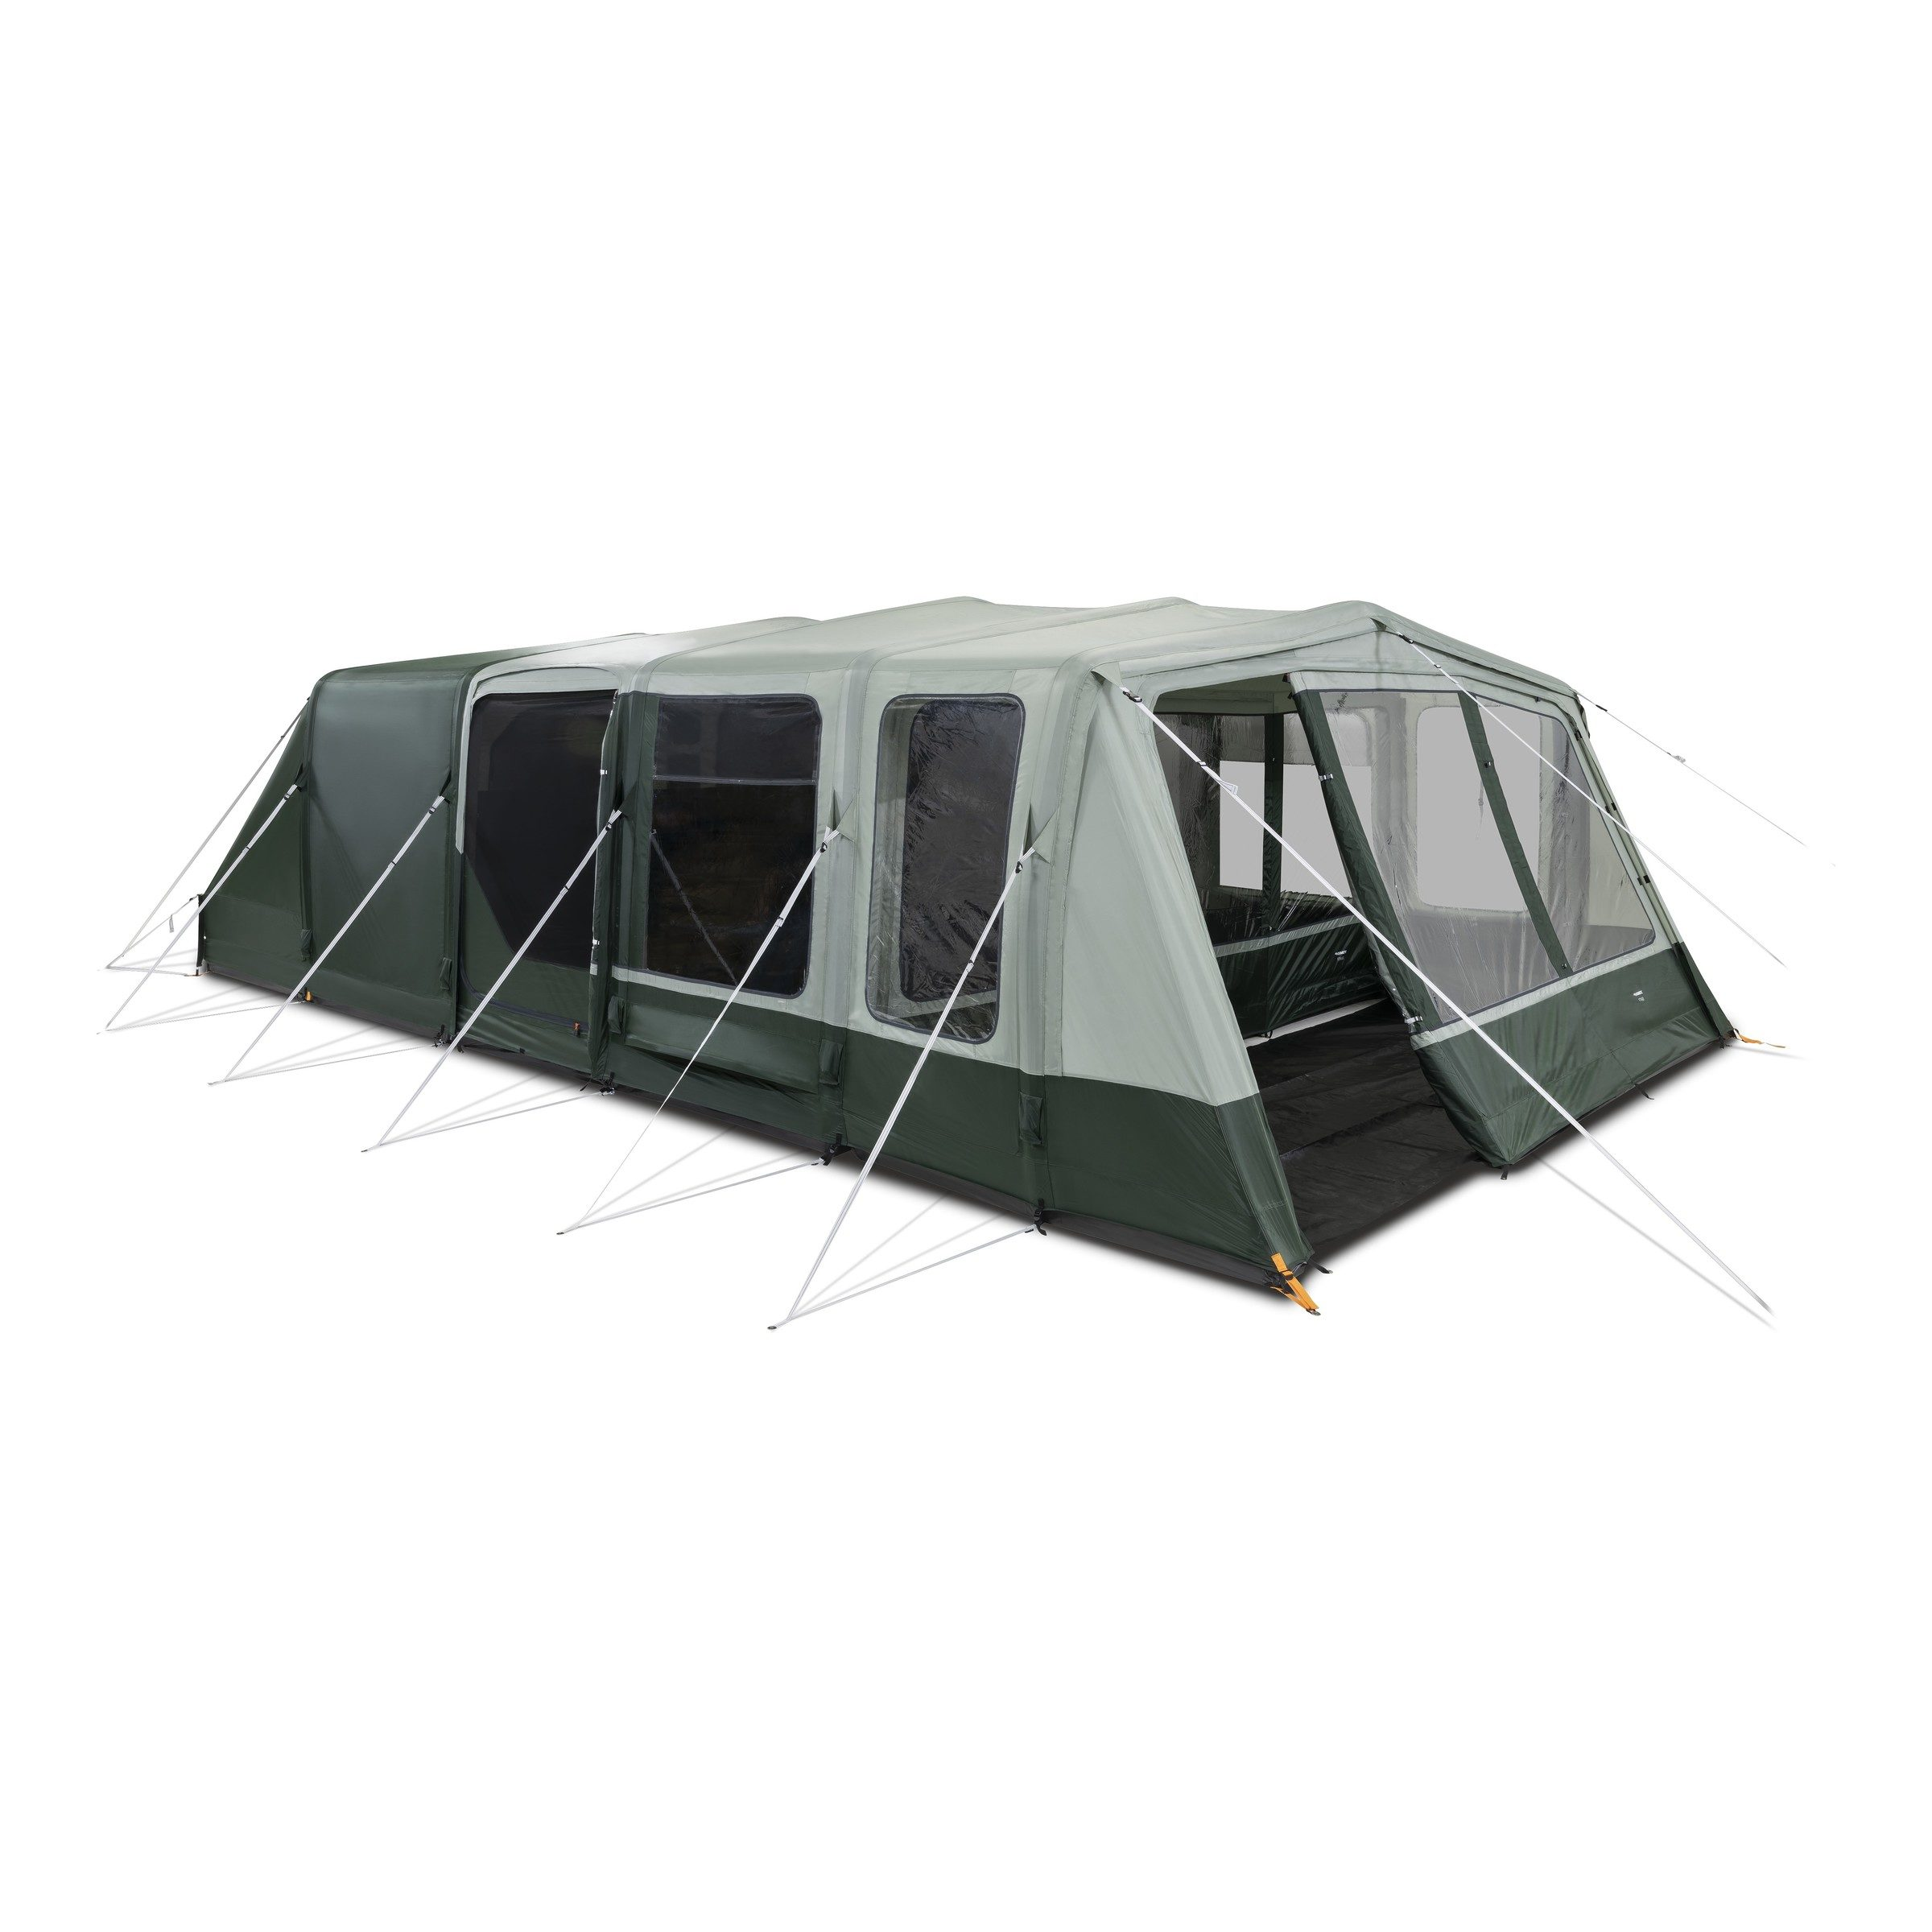 Dometic Ascension 601 Tent